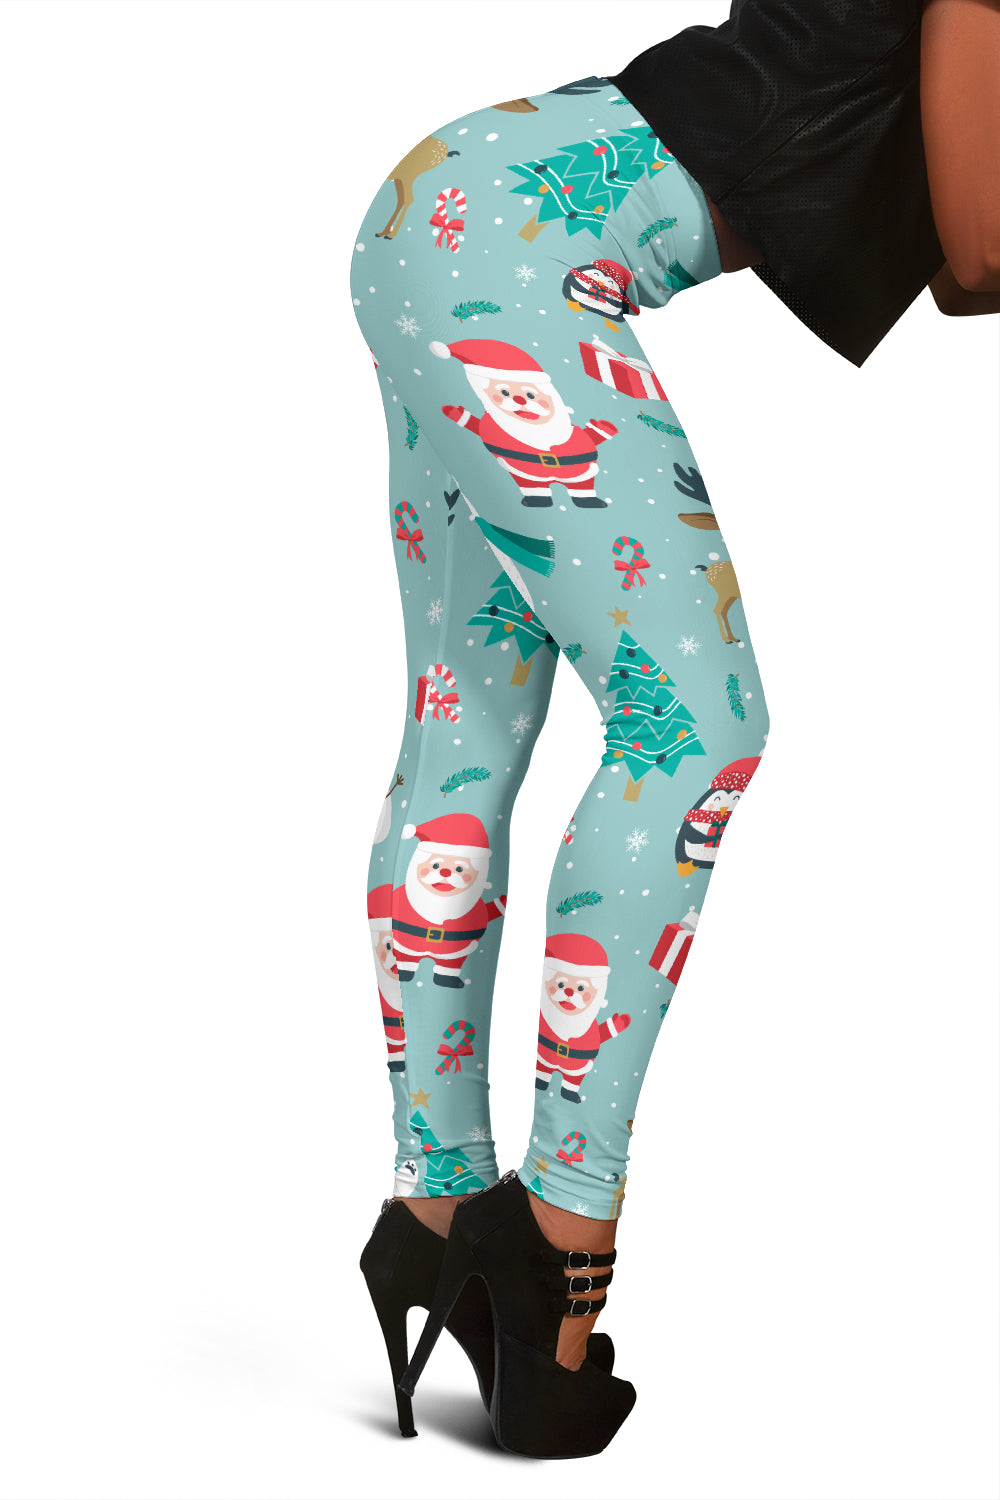 Women's Christmas Leggings With Santa And The Penguin